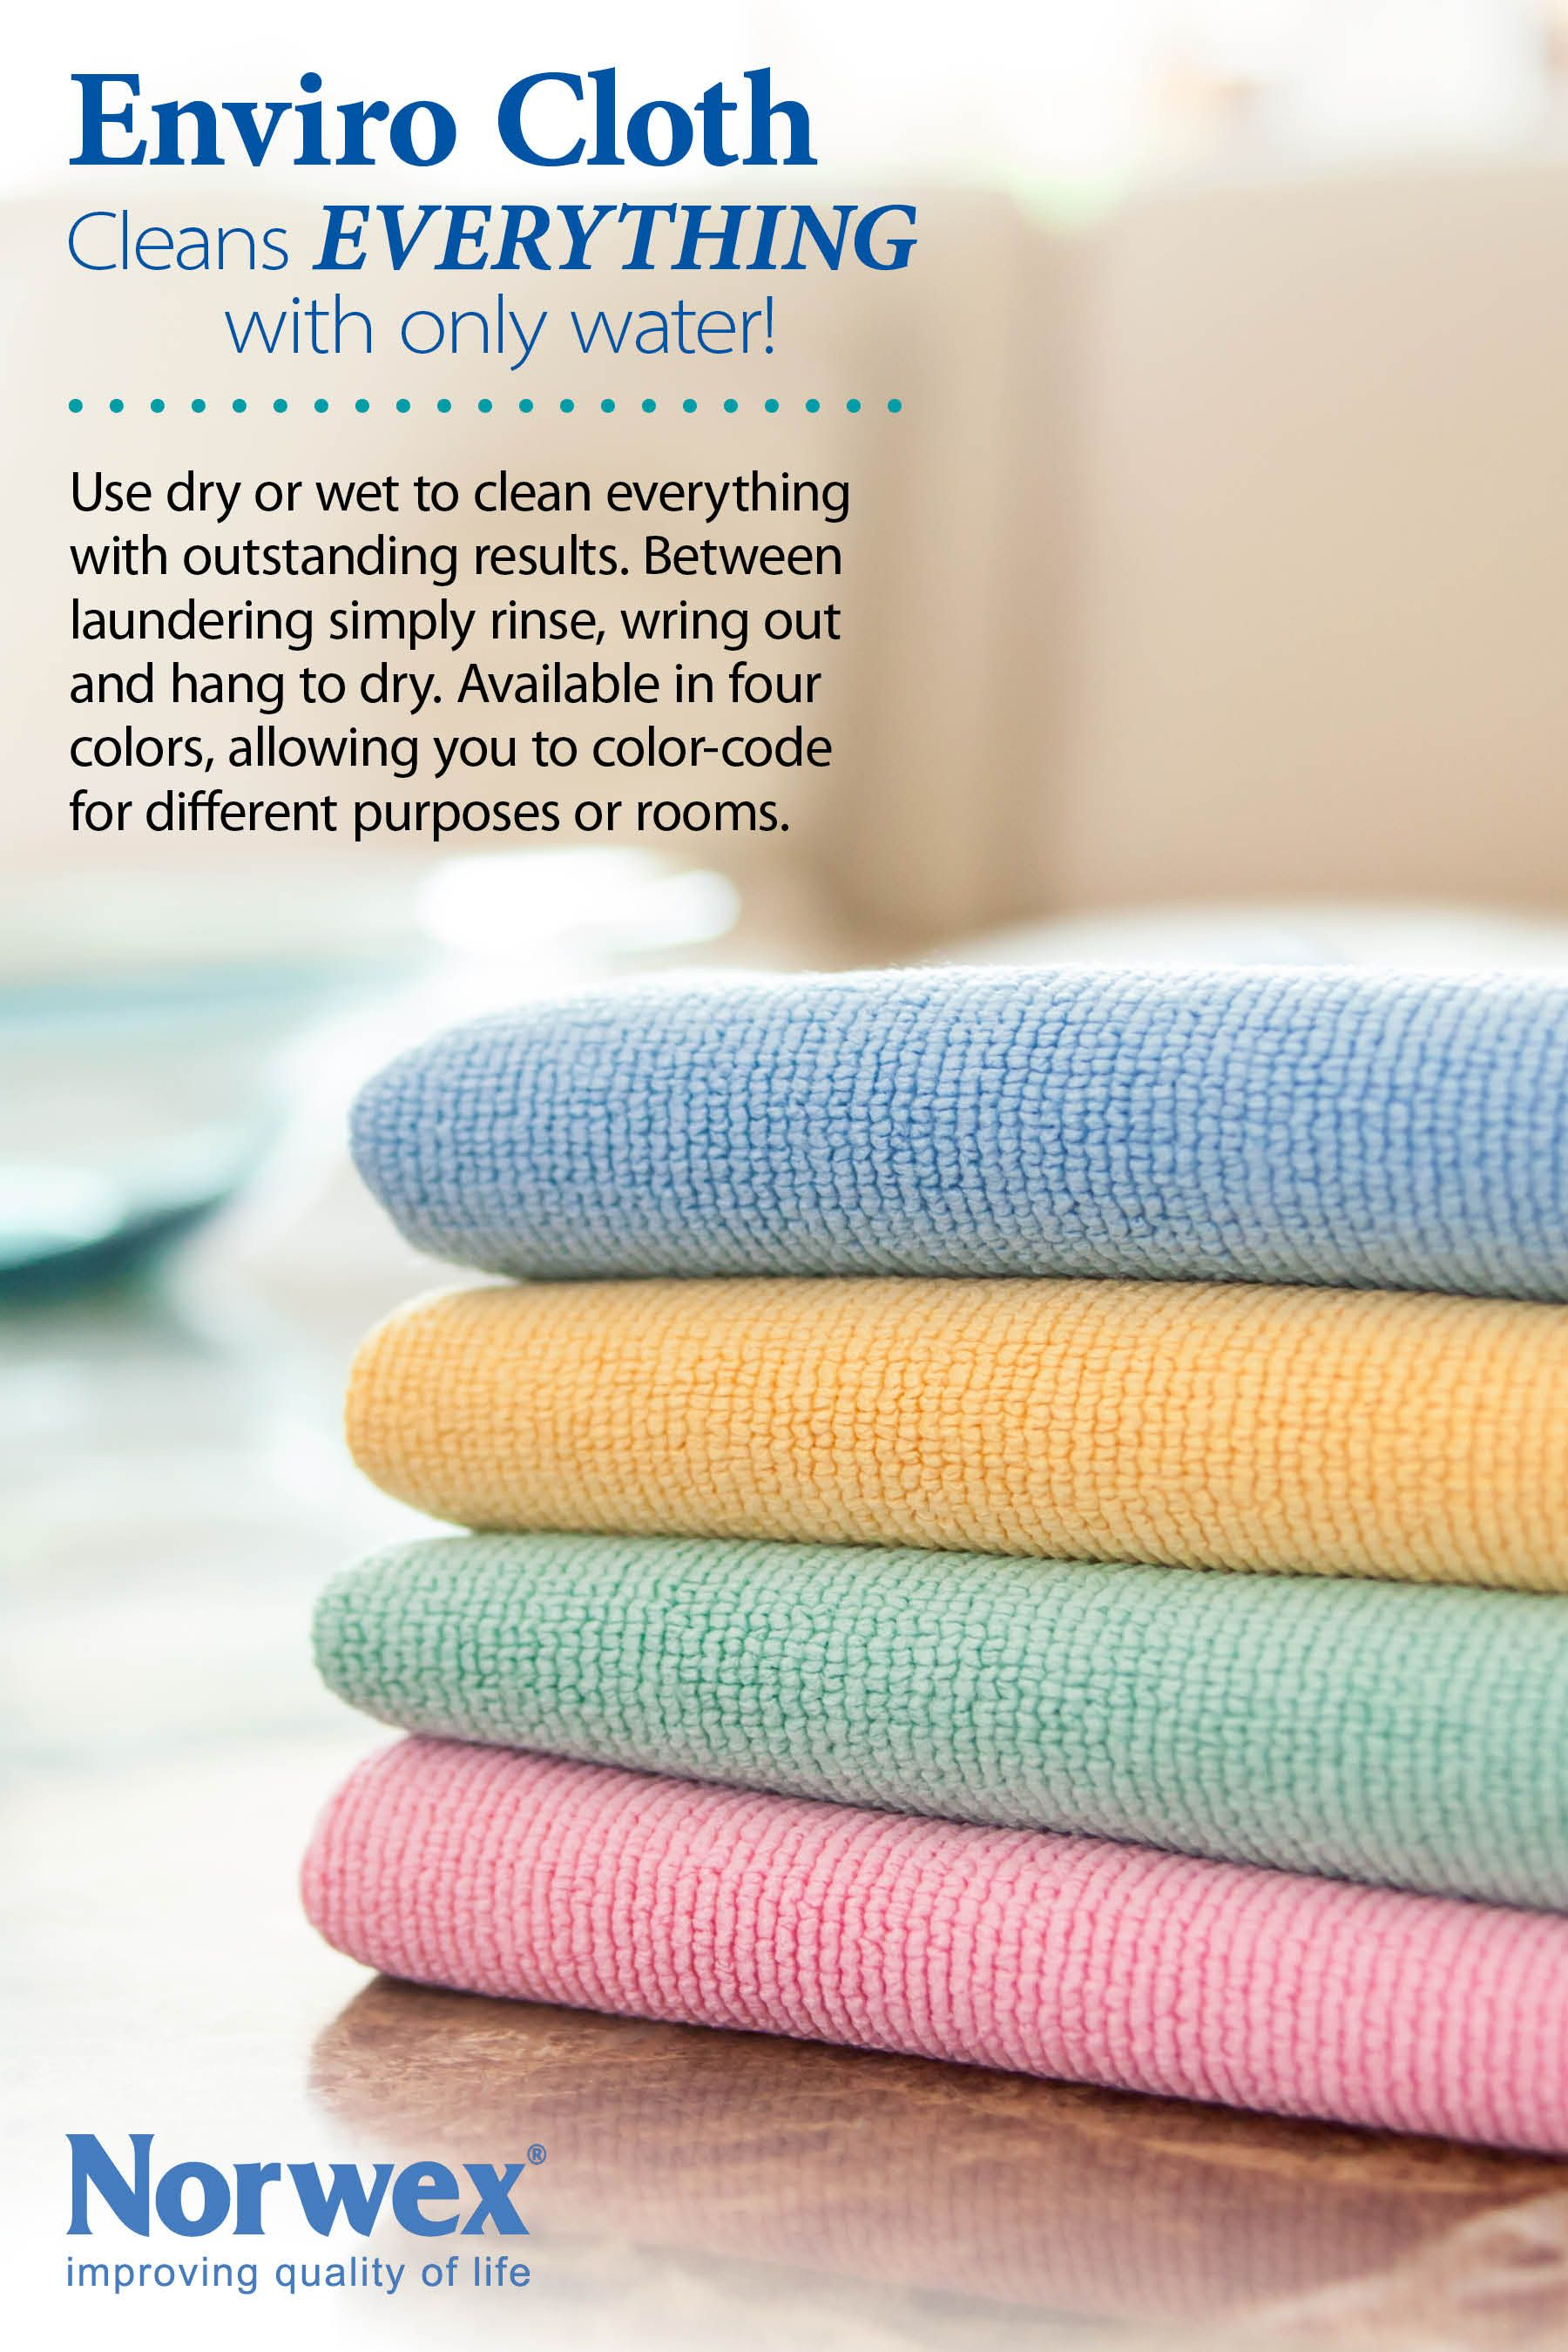 Norwex Enviro Cloth: Use dry or wet to clean everything ...